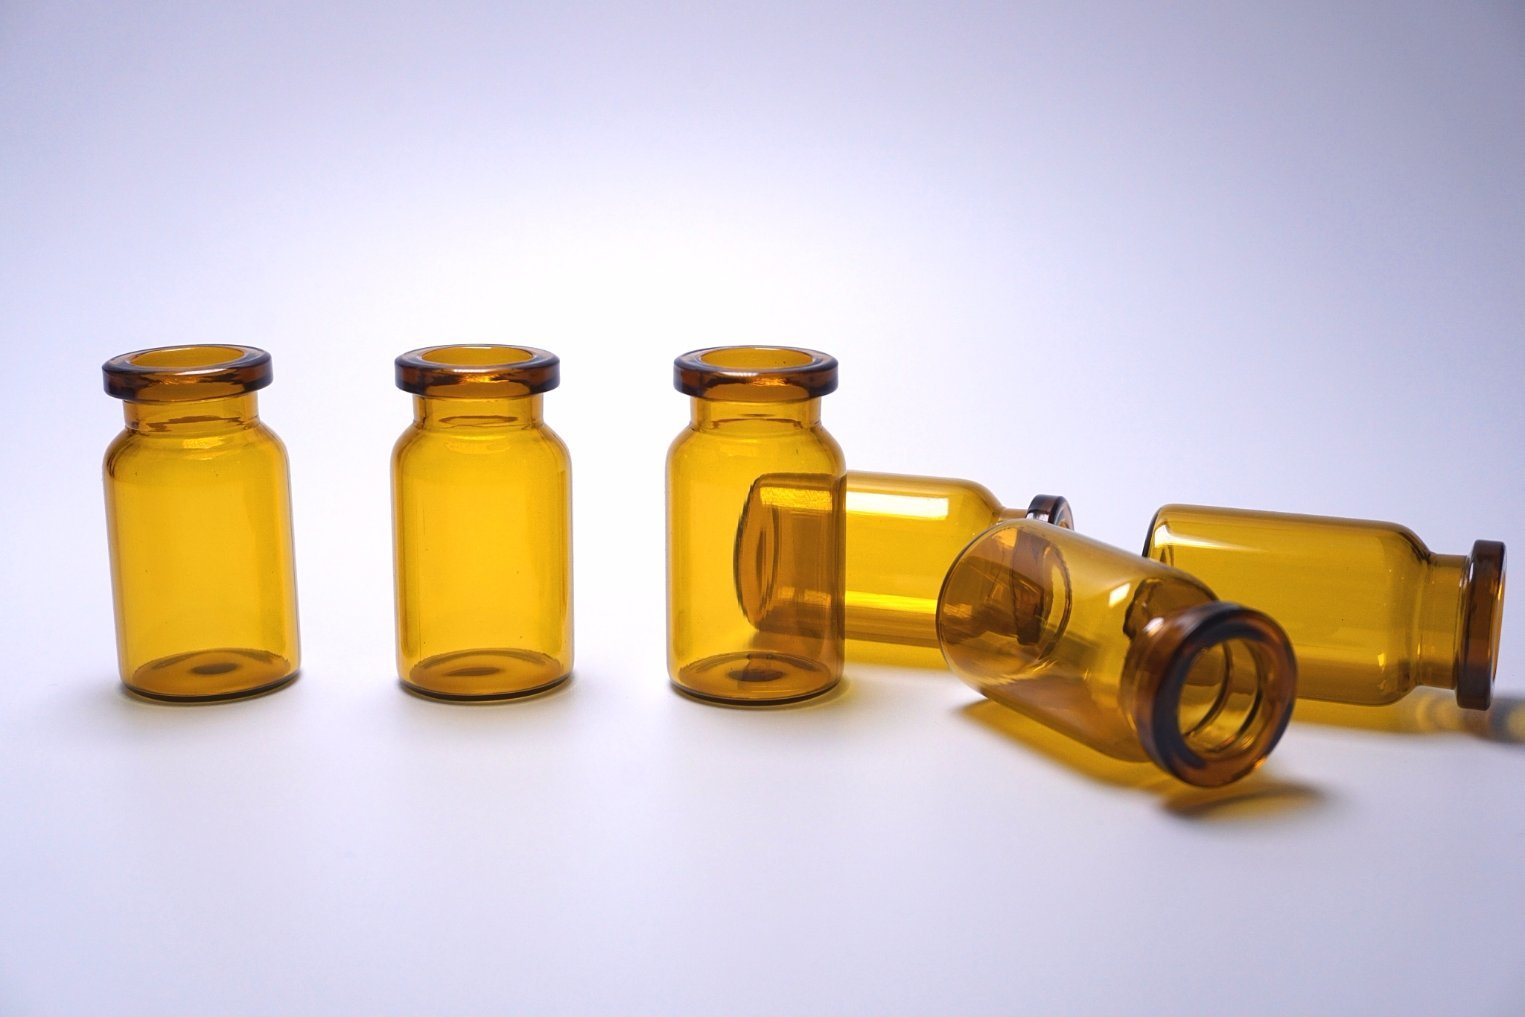 10ml Pharmaceutical Amber Glass Vial for Medical or Lab Use